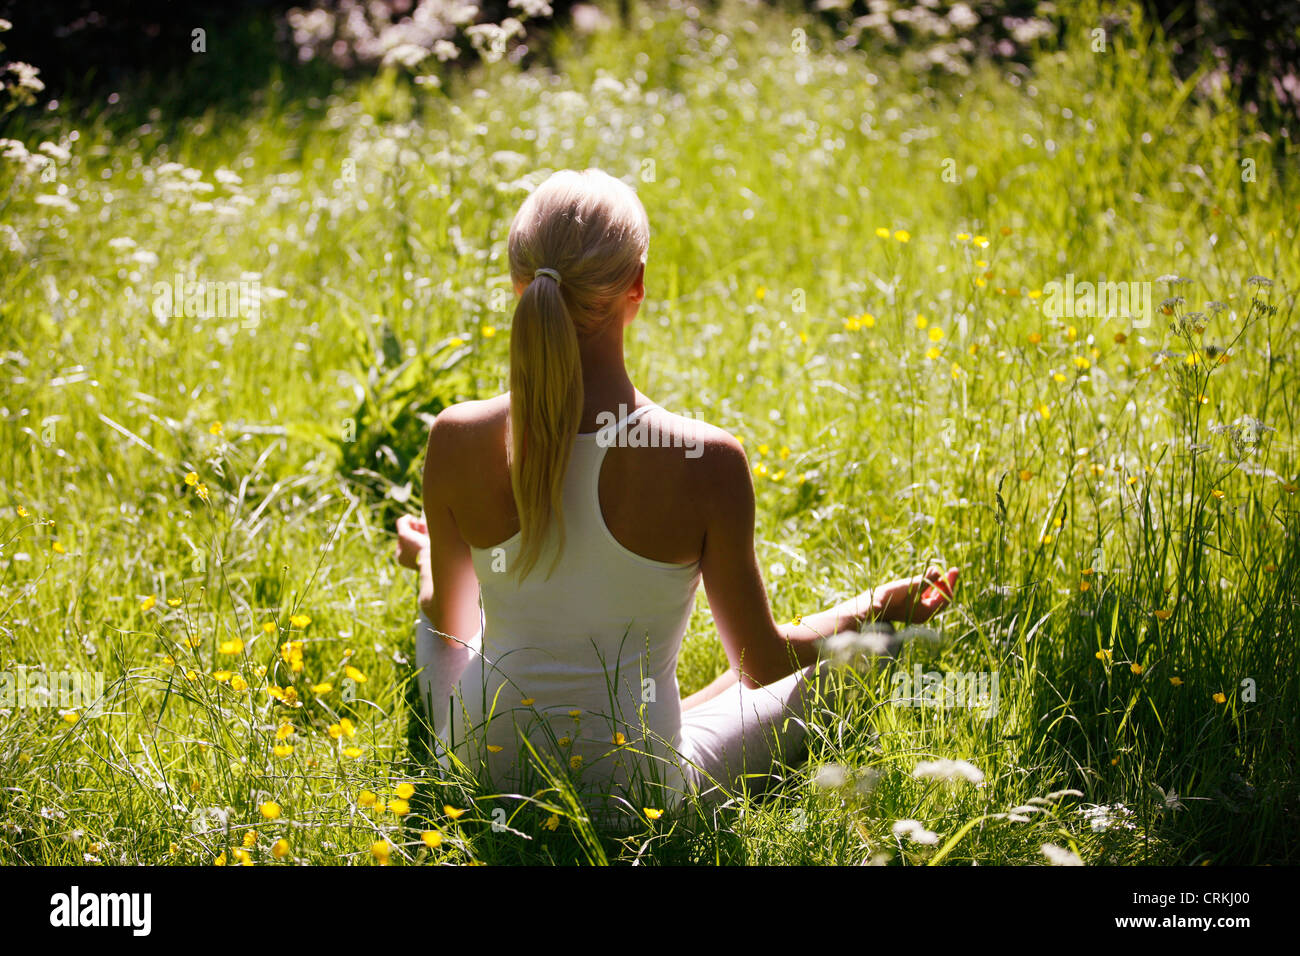 A young woman meditating outside, back view - Stock Image